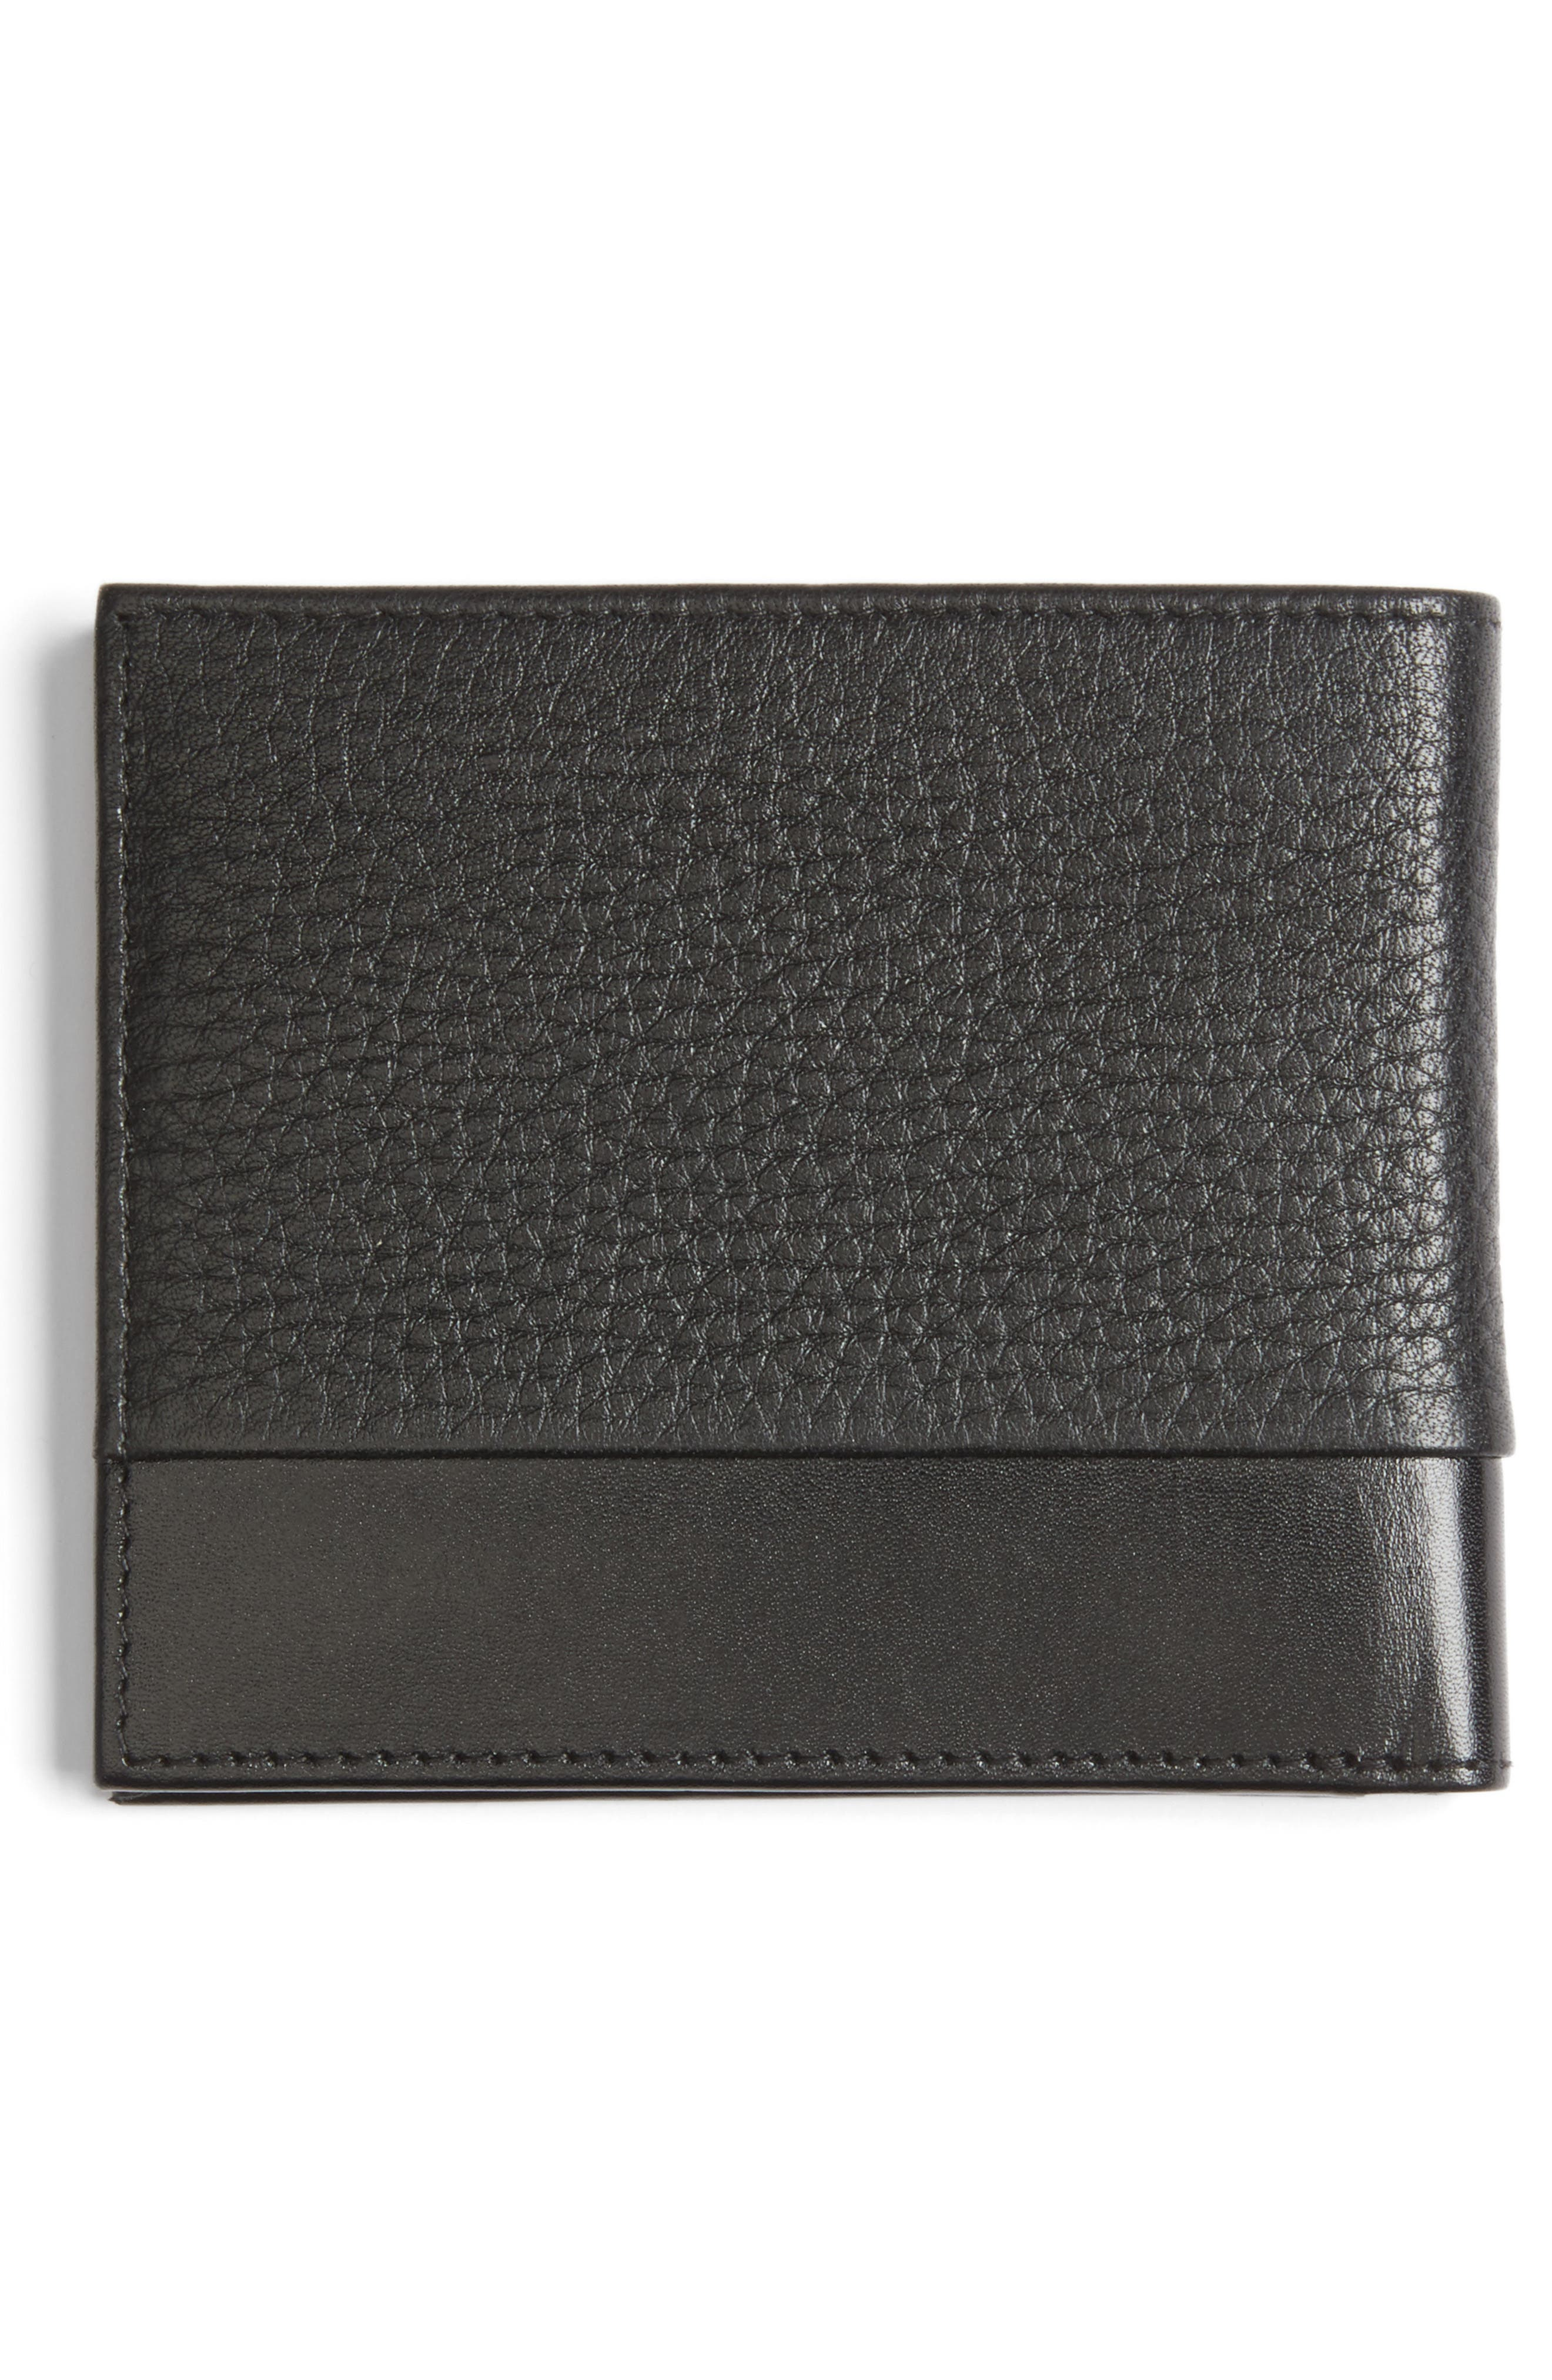 Mixdup Leather Wallet,                             Alternate thumbnail 3, color,